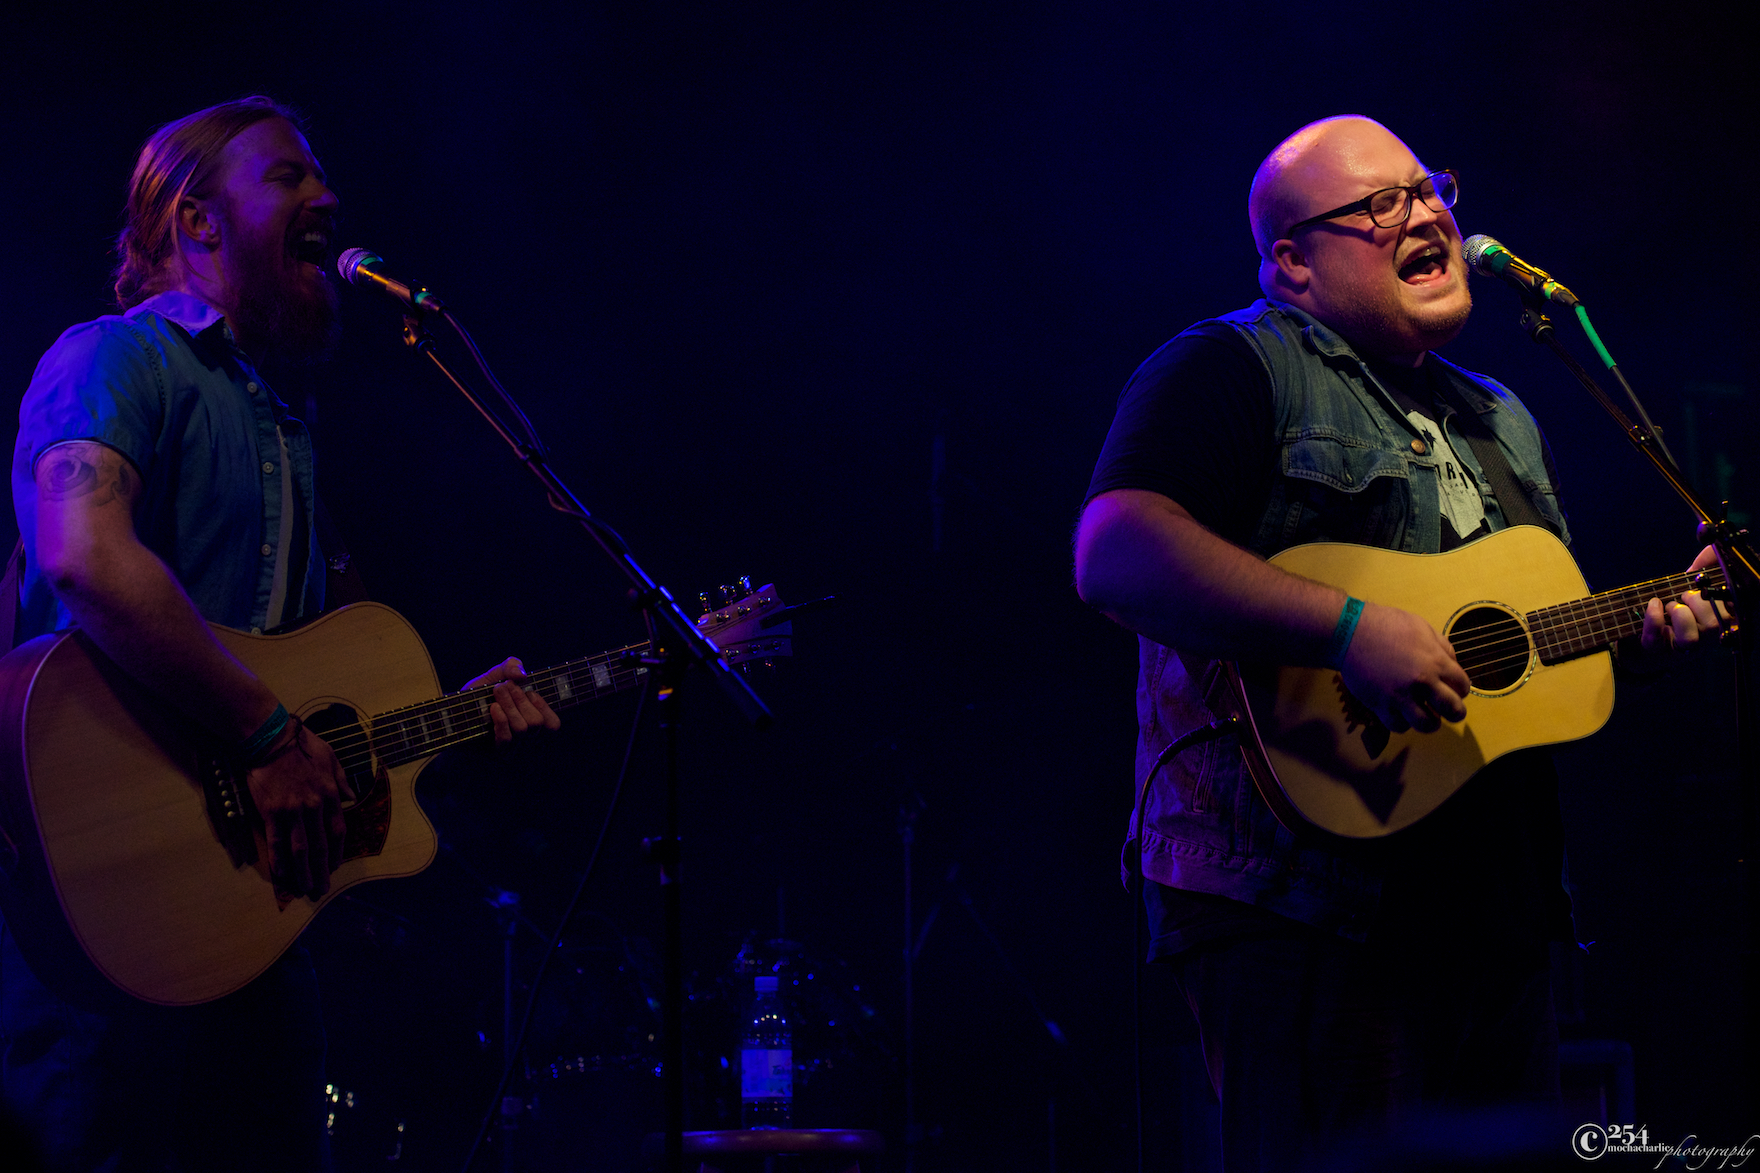 Austin Jenckes & Cody Beebe at Chinook Fest West Reveal at The Crocodile (Photo by Mocha Charlie)